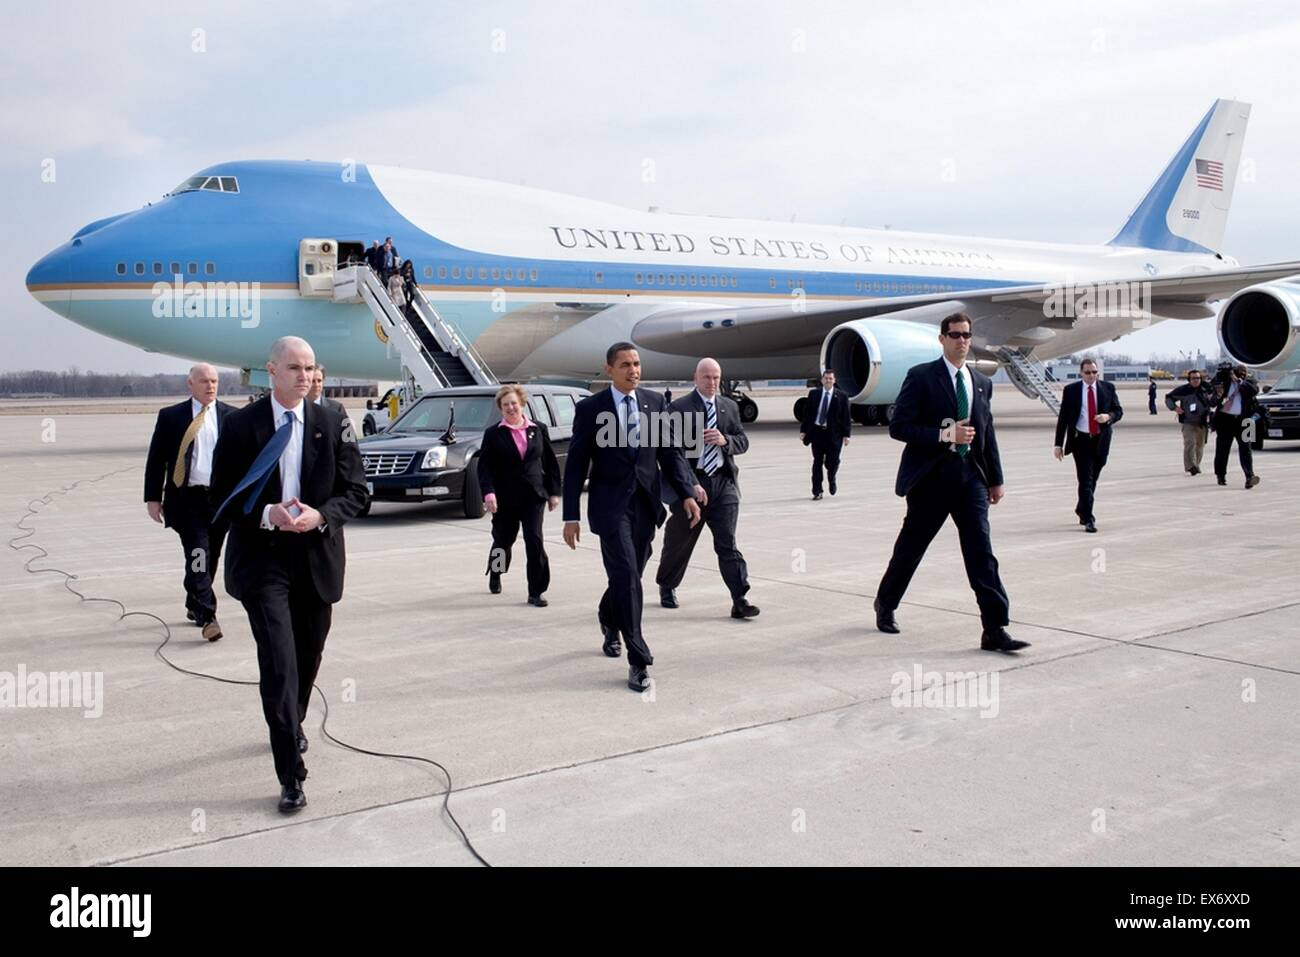 2009. The US President Barak Obama arrives at Columbus, Ohio airport. He is accompanied off Air Force One, by members - Stock Image